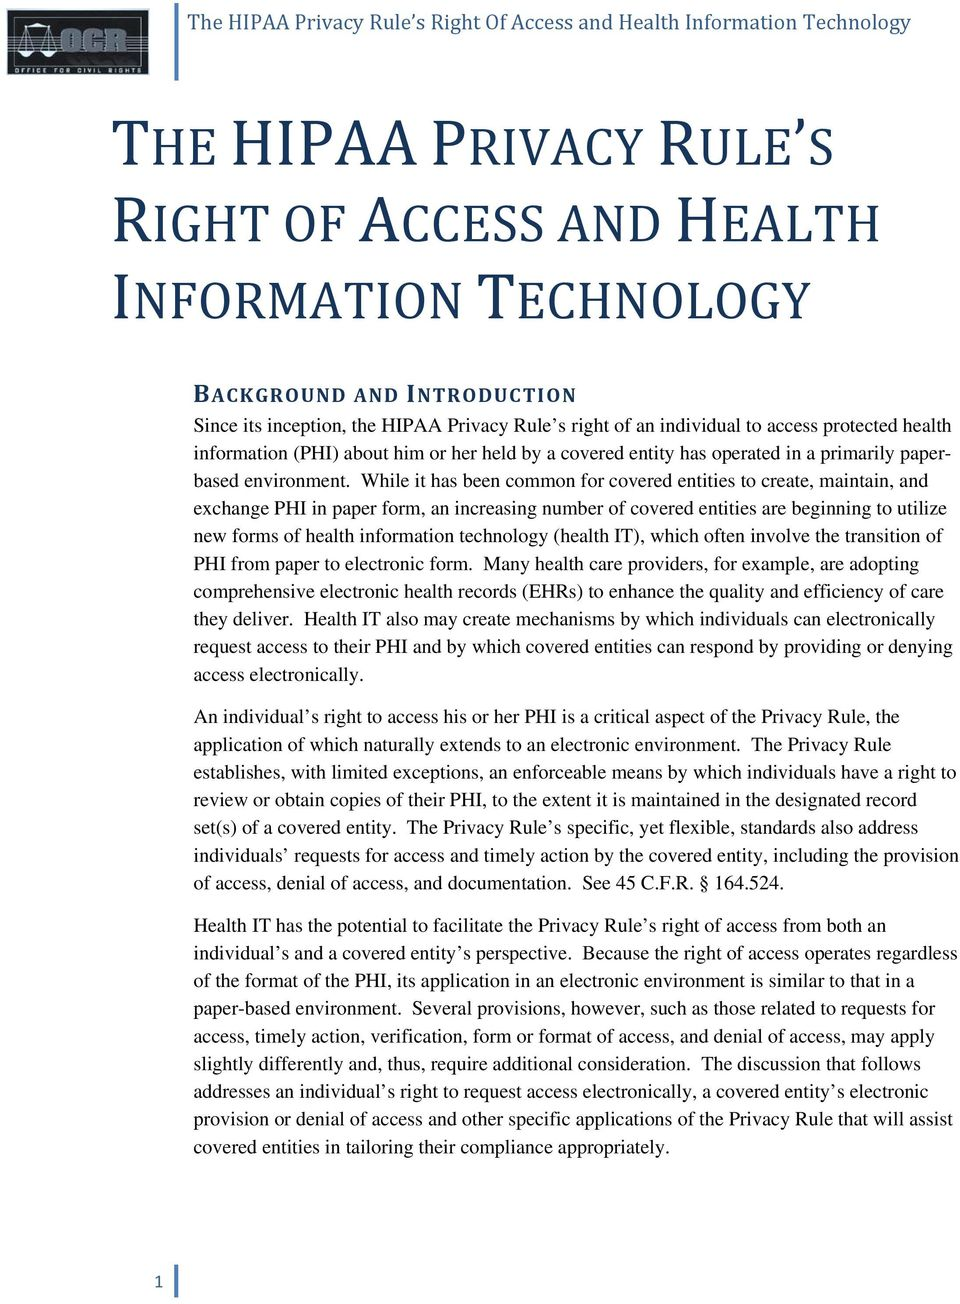 While it has been common for covered entities to create, maintain, and exchange PHI in paper form, an increasing number of covered entities are beginning to utilize new forms of health information